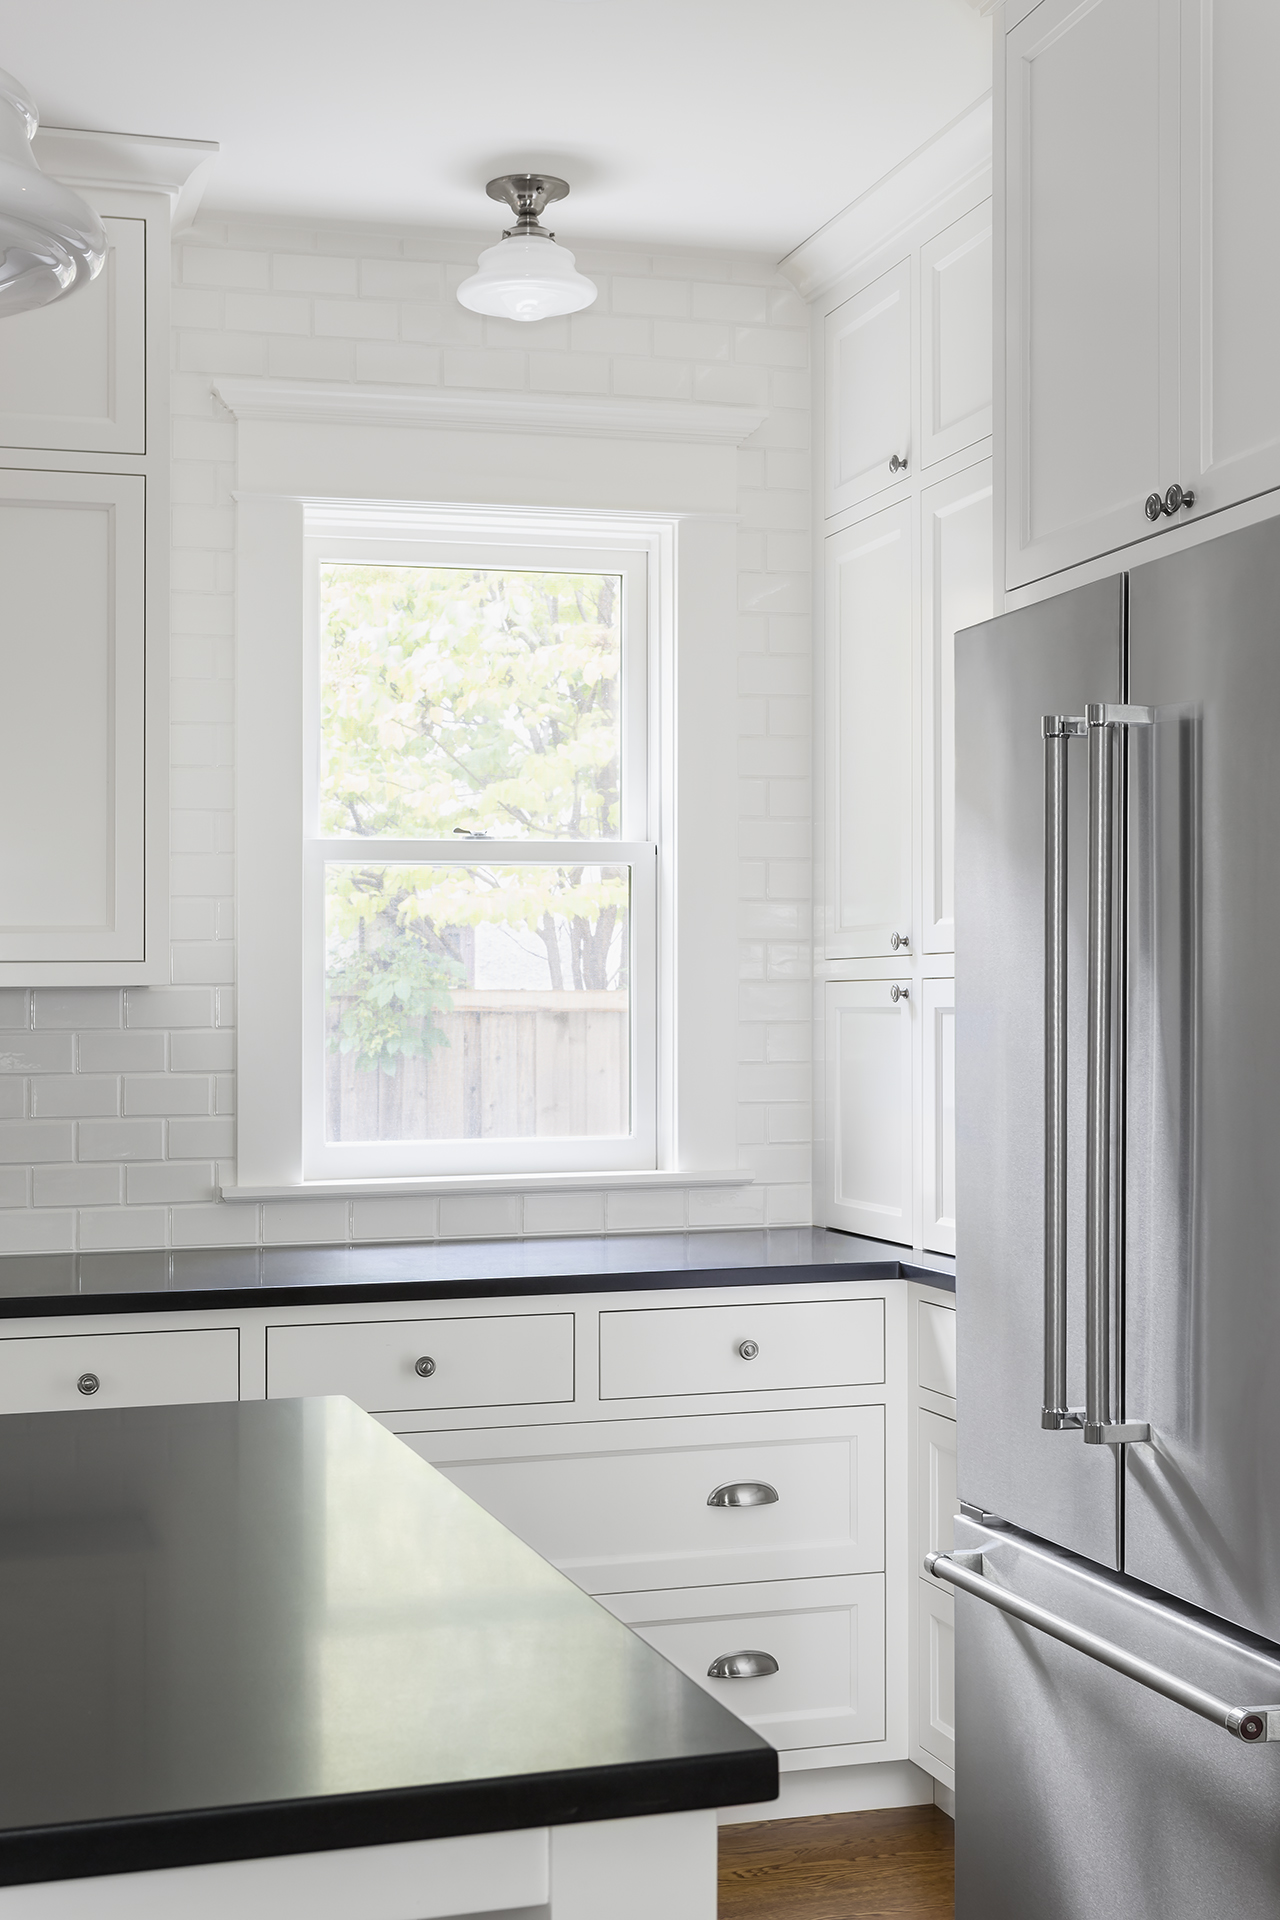 Classic inset doors and drawers, satin nickel hardware and reproduction lighting are nods to the past, while stainless steel appliances, honed-granite countertops and a center island add modern touches.